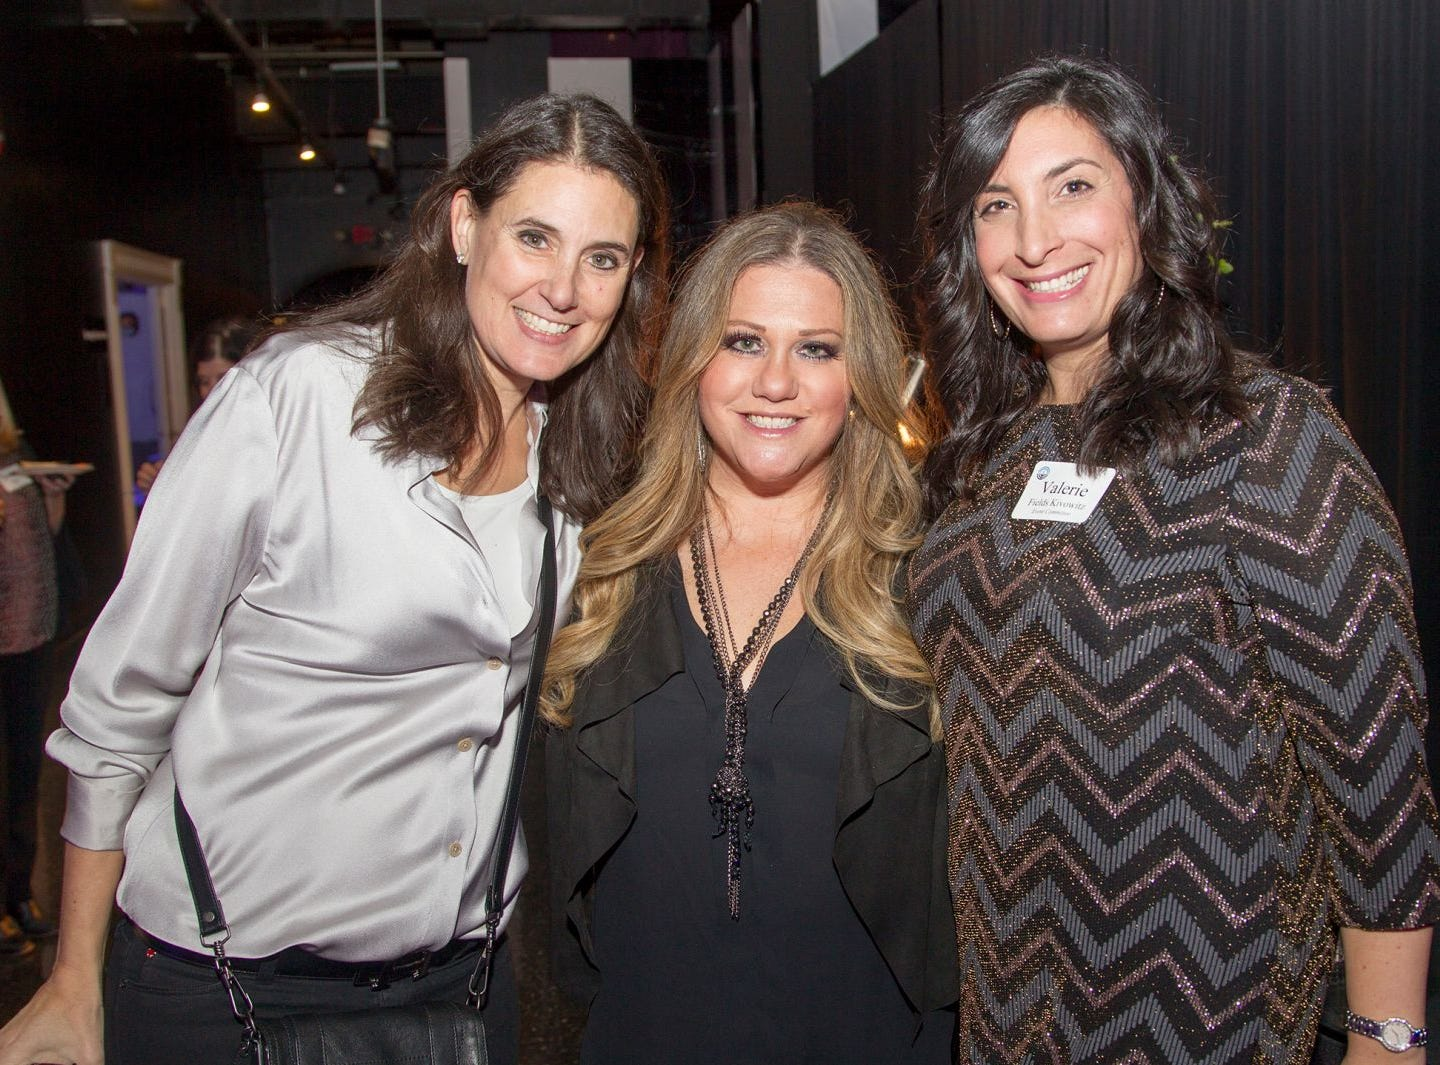 Samantha Gabriel, Keri Friedman, Valerie Kivowitz. Jewish Federation of Northern New Jersey held its first Girl's Night Out dance party at Space in Englewood. 01/24/2019